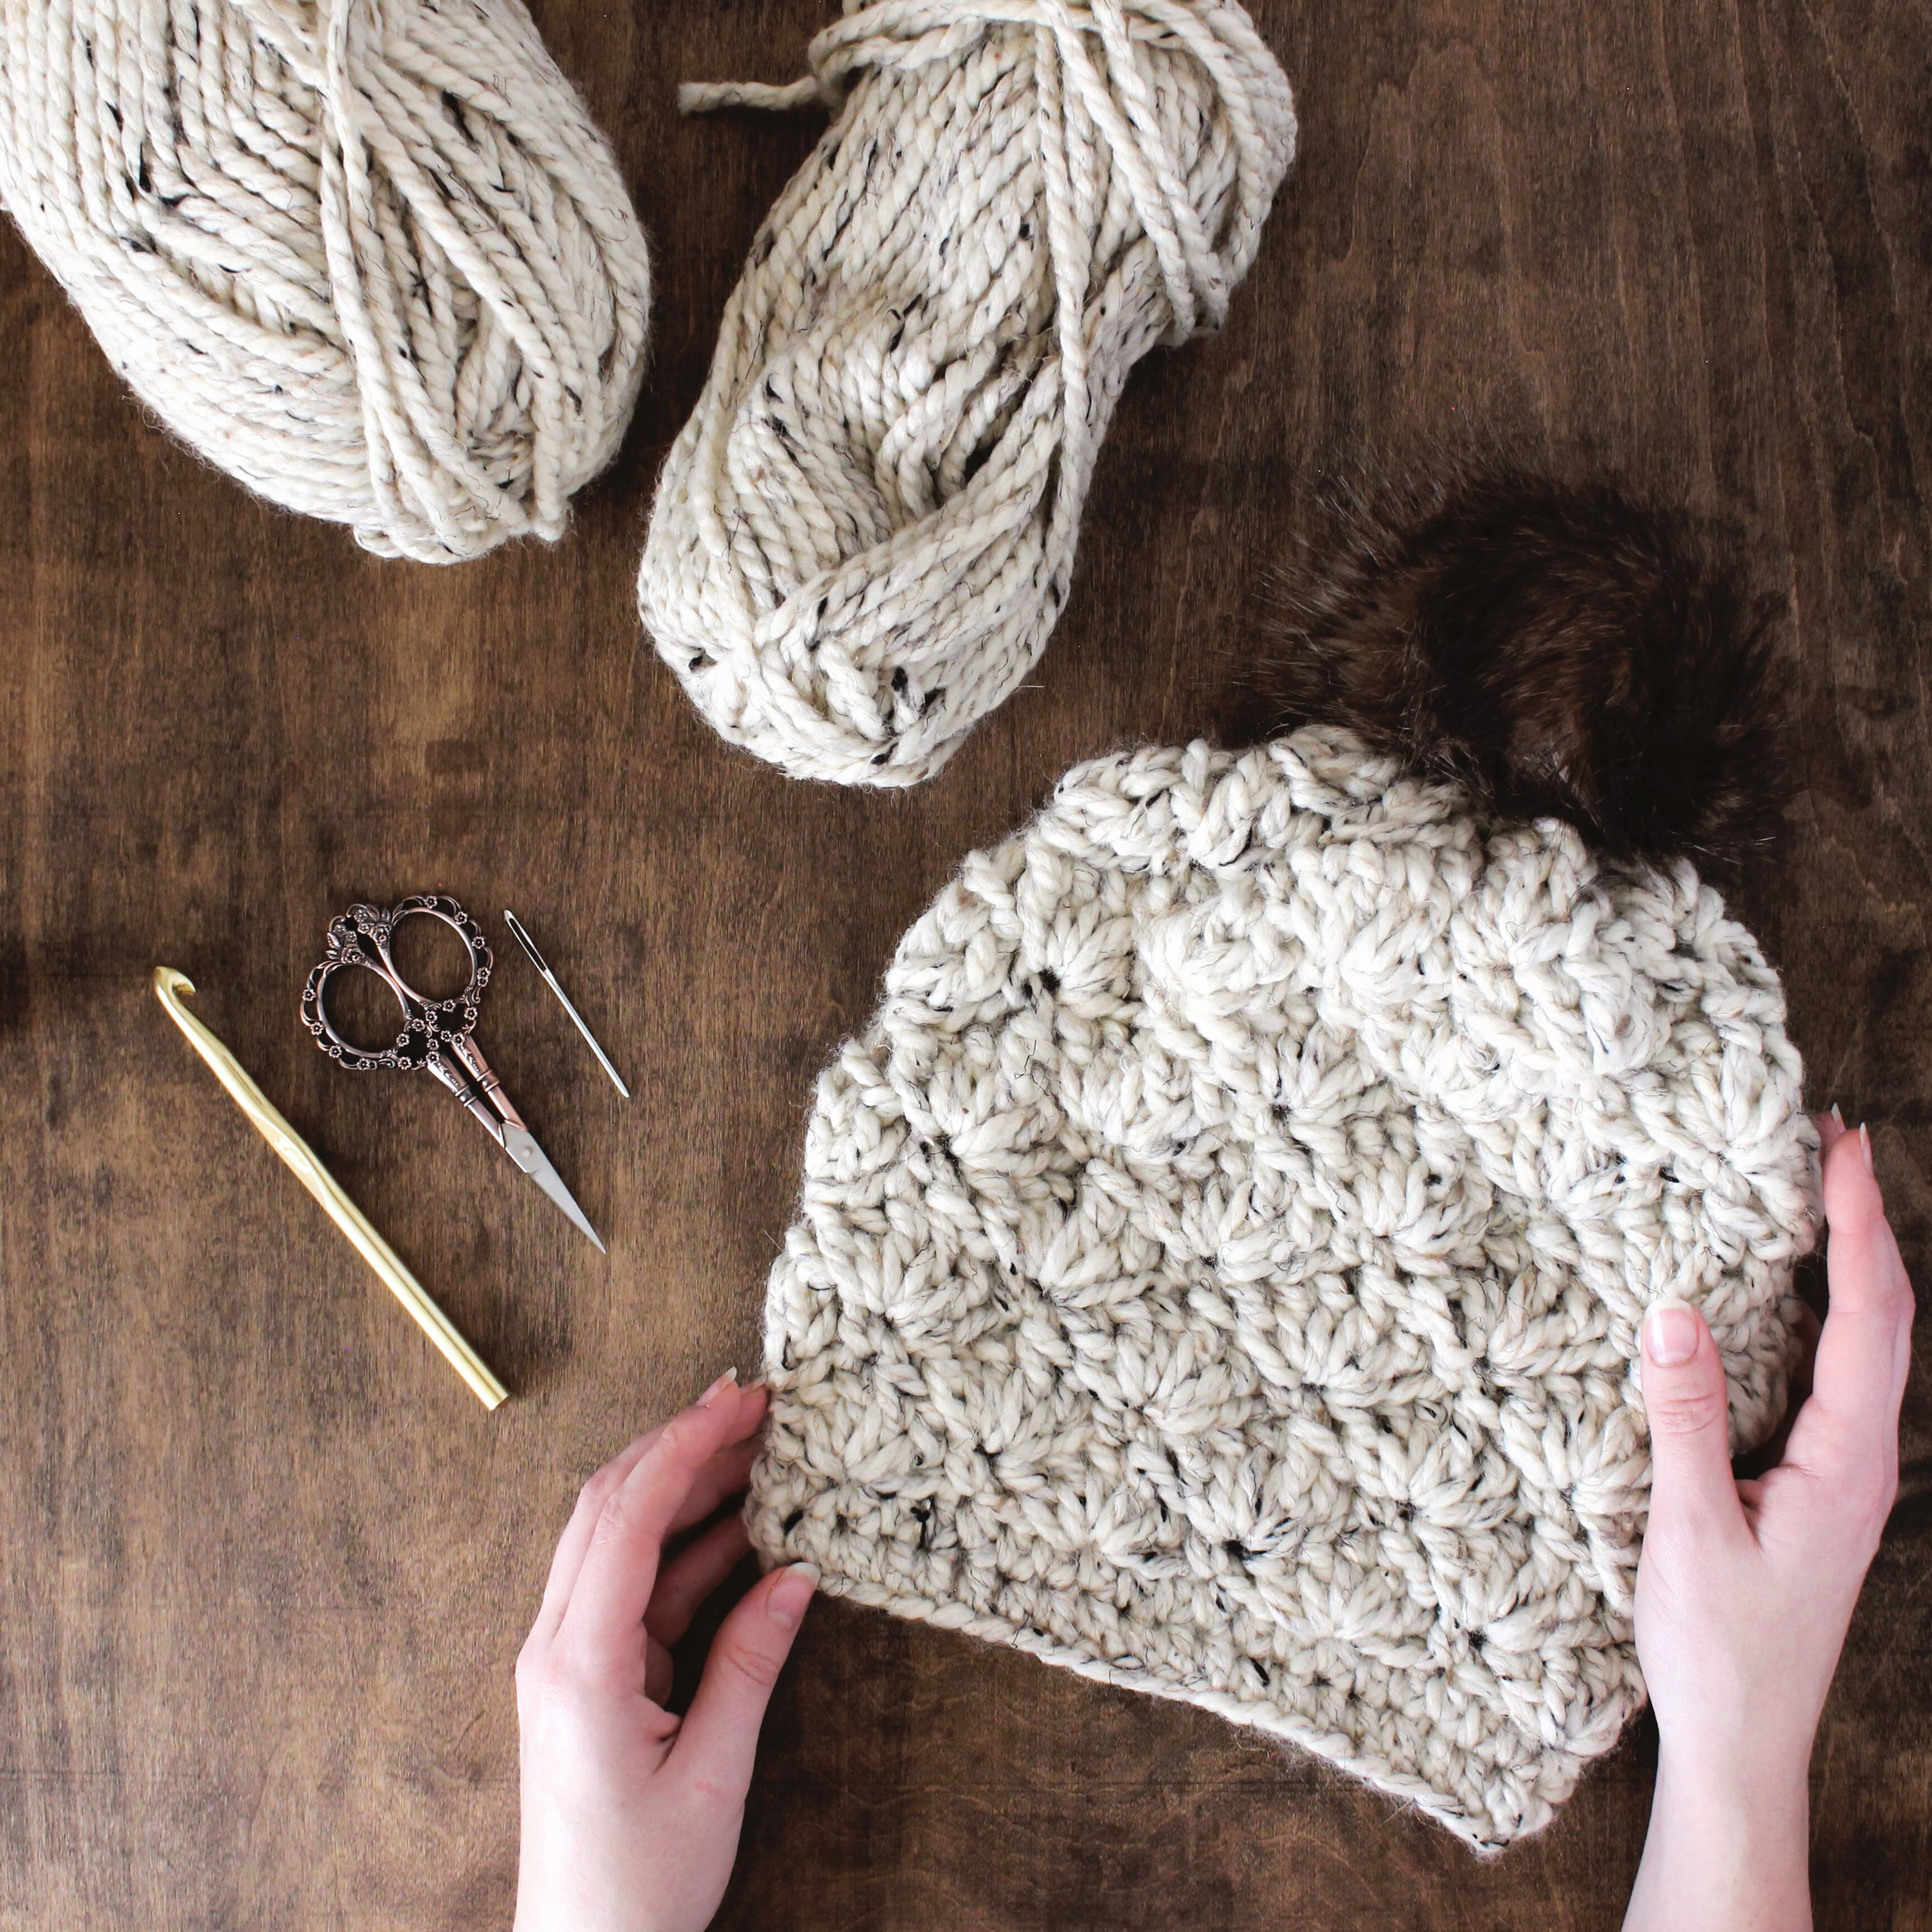 Madison Beanie Crochet Pattern // Beginner Friendly, Step By Step Photo Tutorials Included // Darling Be Brave